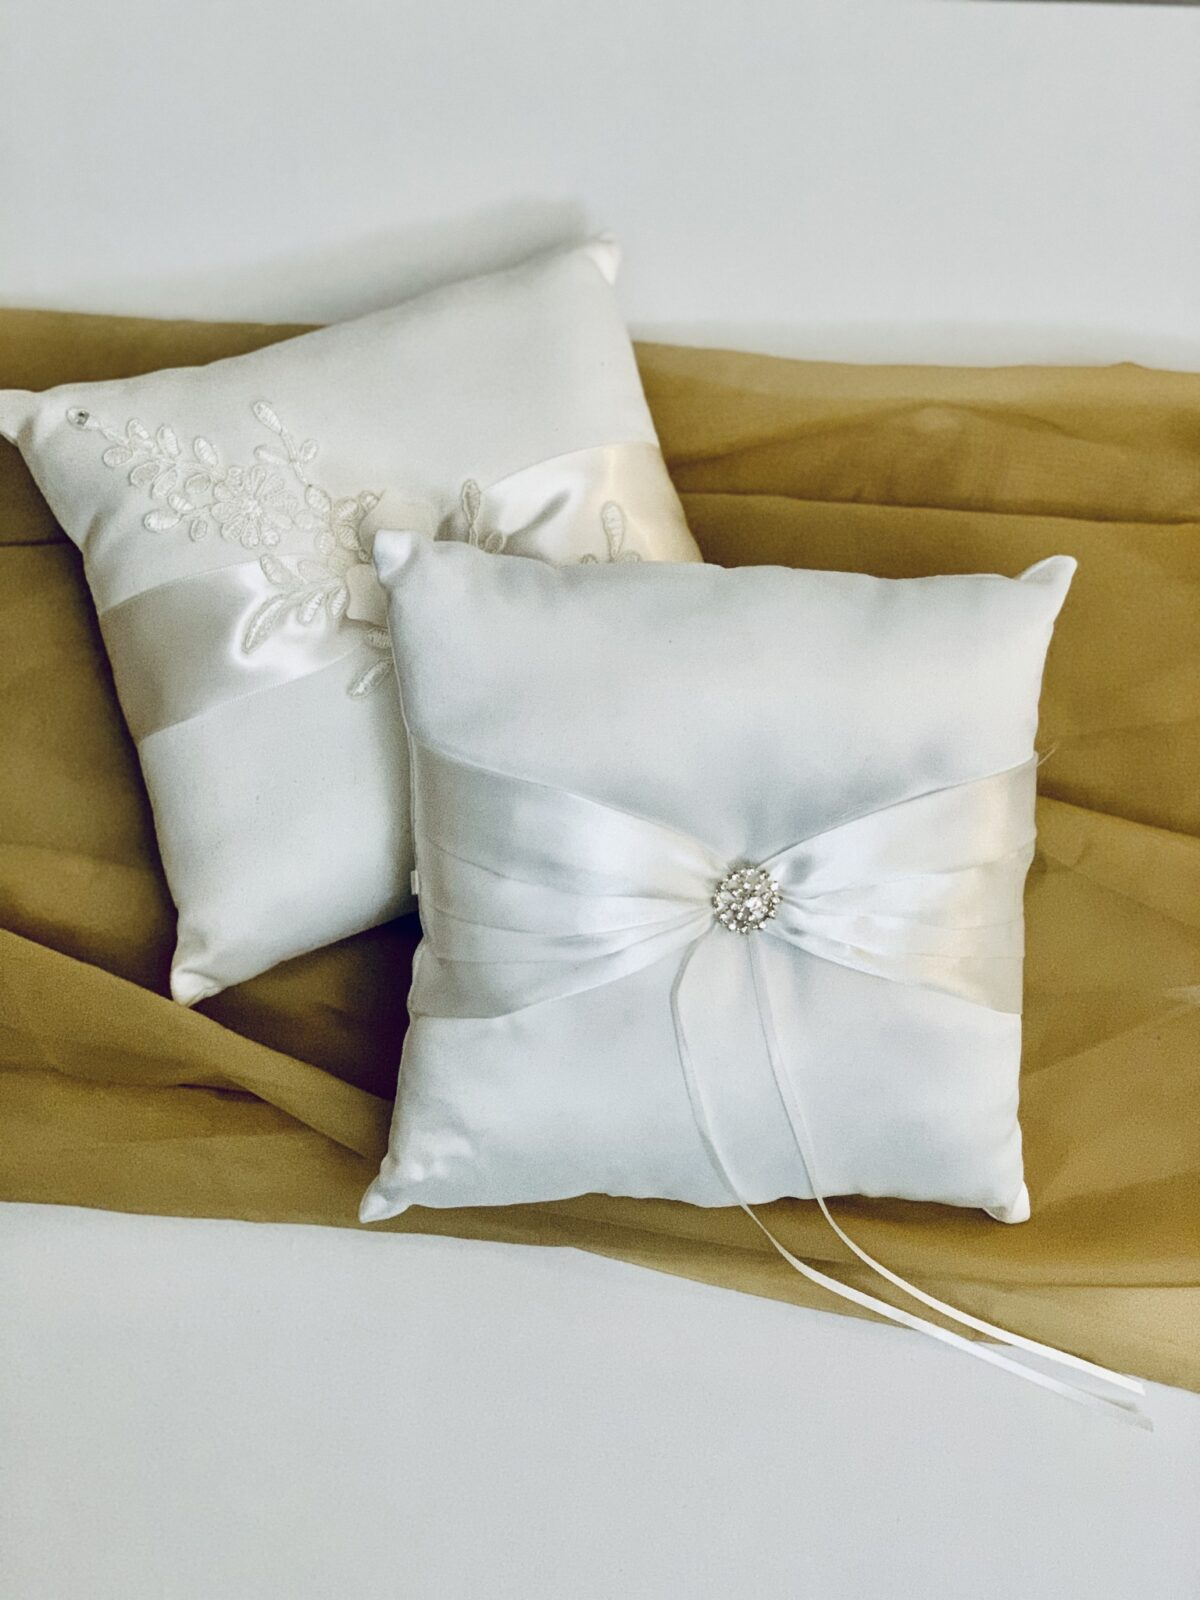 """Ring Bearer Pillow with Satin Bow and Jewel - White, 7"""" x 7"""" x 2.5"""", Qty:1, $8 - Ring Bearer Pillow with Diagonal Florals - White, 7"""" x 7"""" x 2.5"""", Qty:1, $8"""